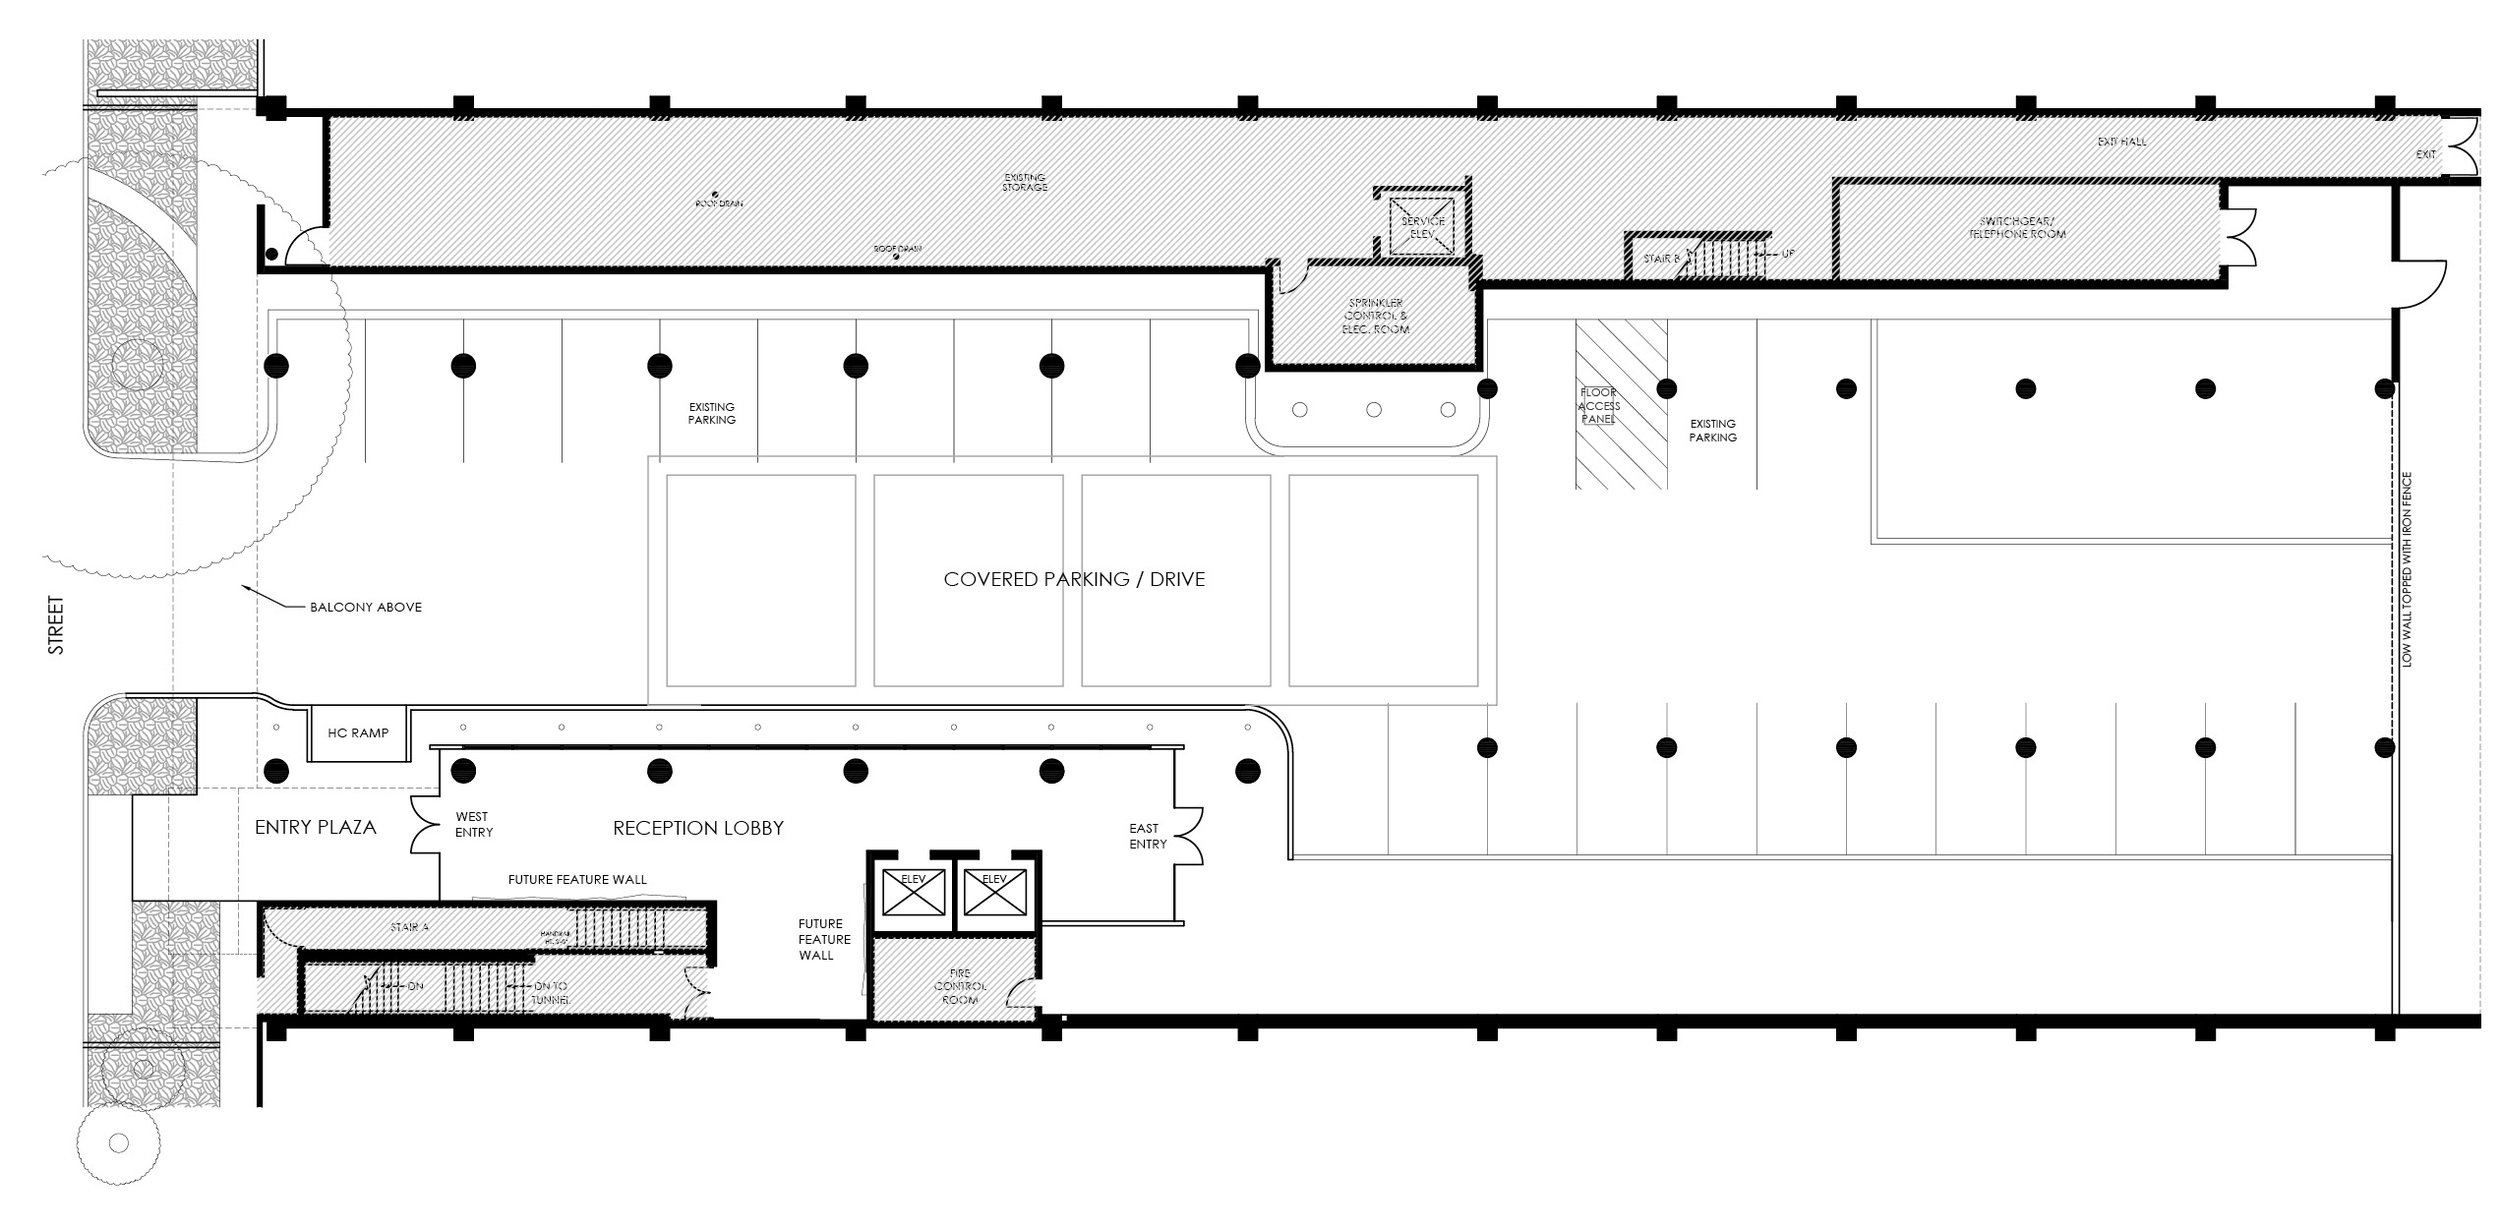 Lofts_GroundFloorplan.jpg